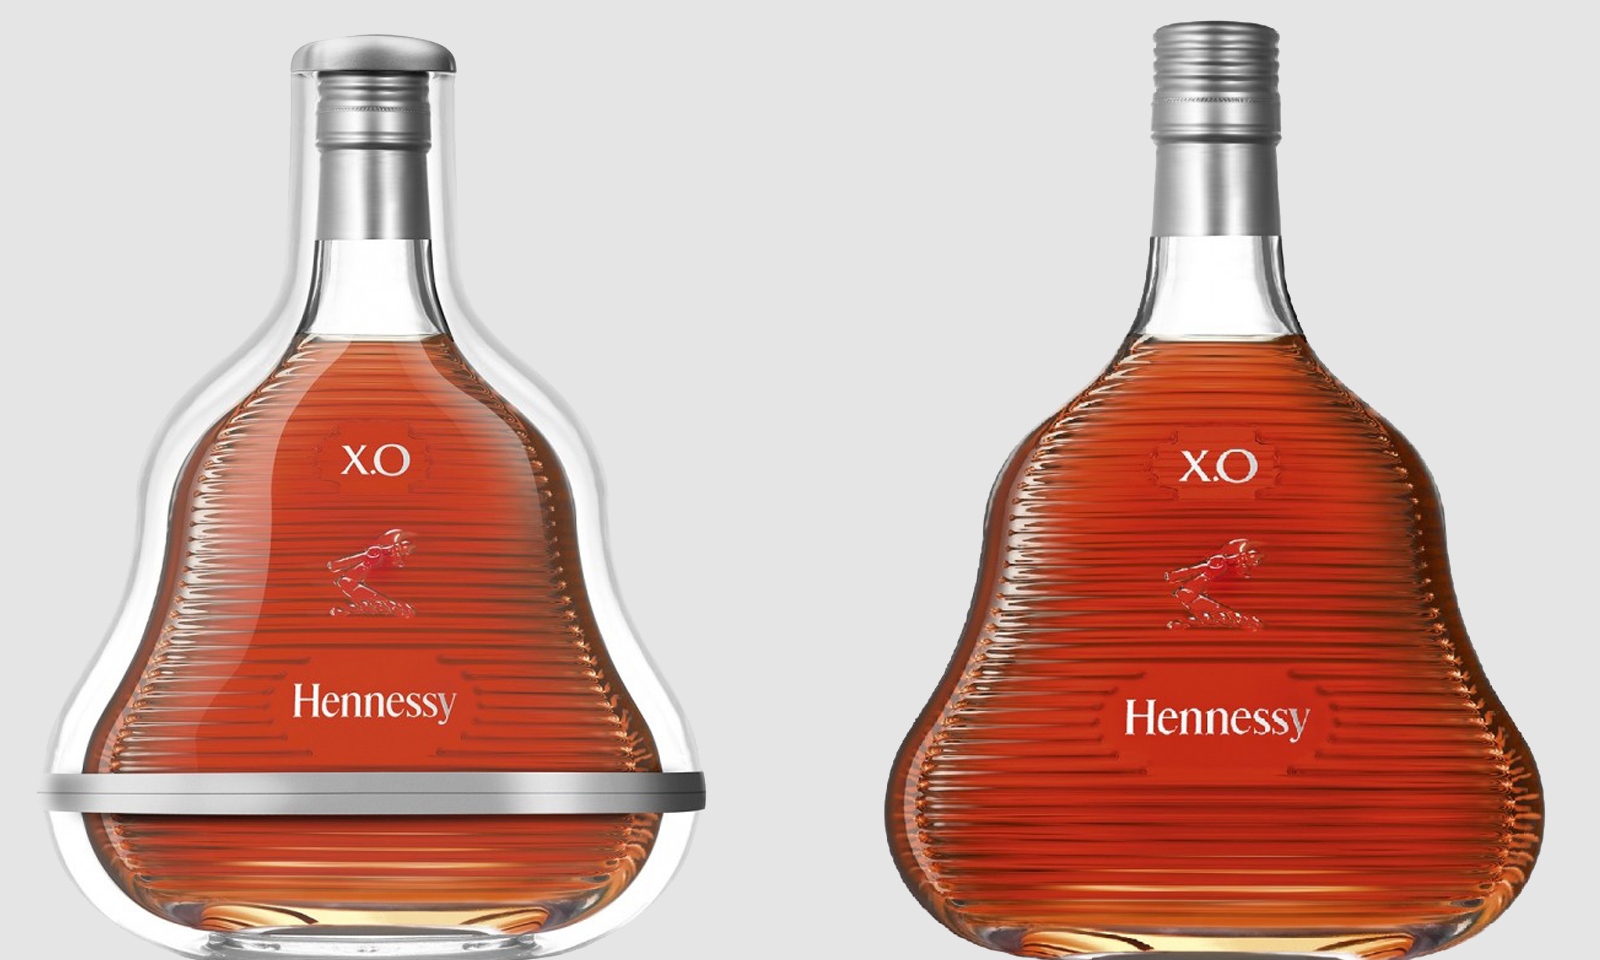 The Hennessy X.O 2017 limited edition bottle by Marc Newson